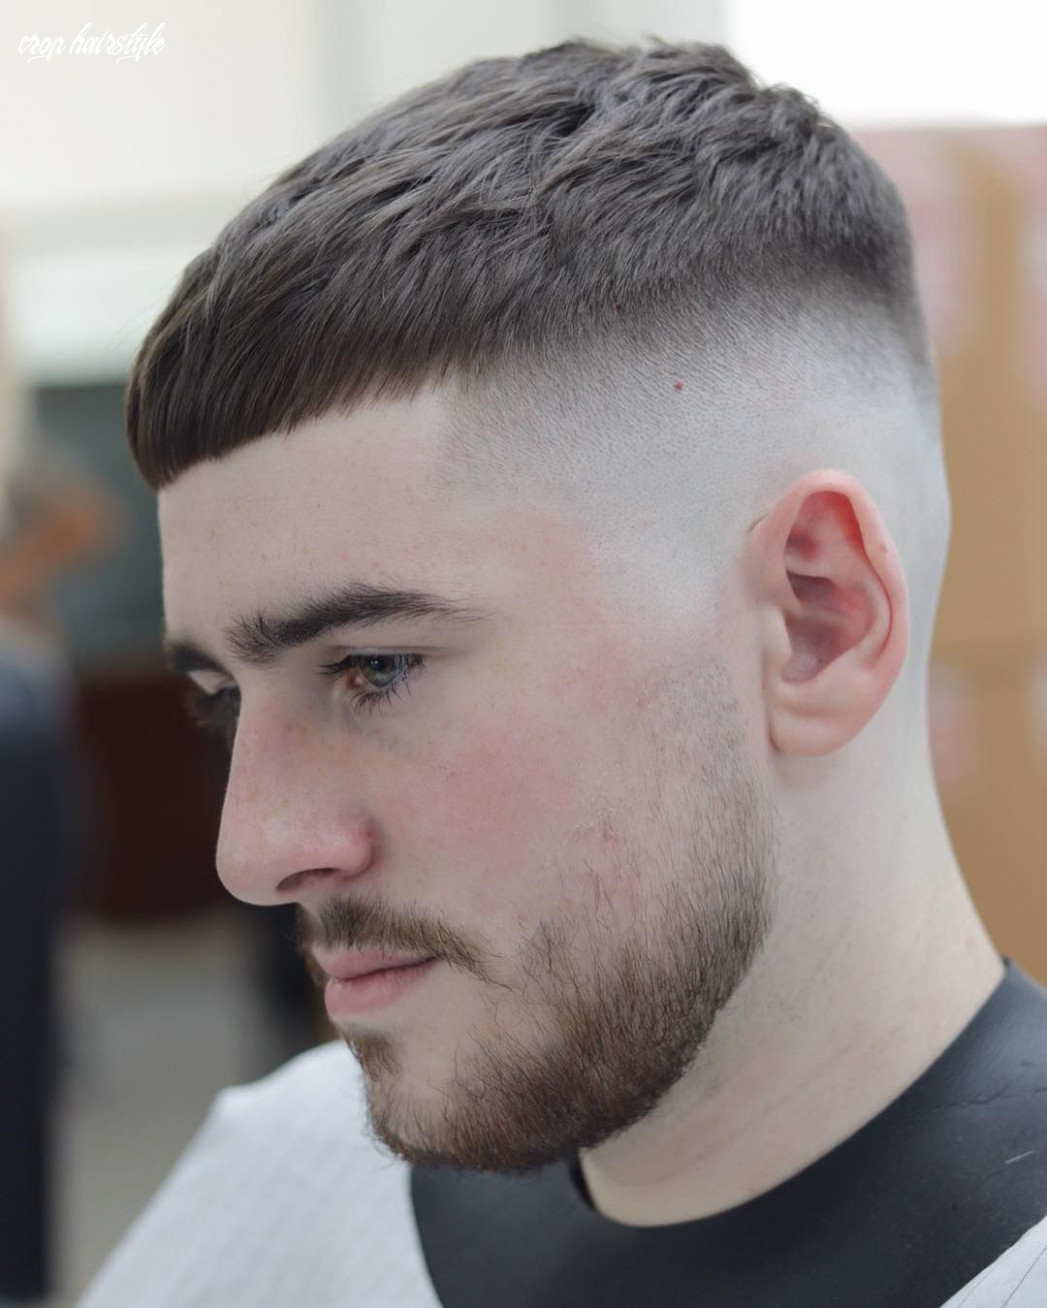 10 best french crop haircut: how to get styling guide | mens